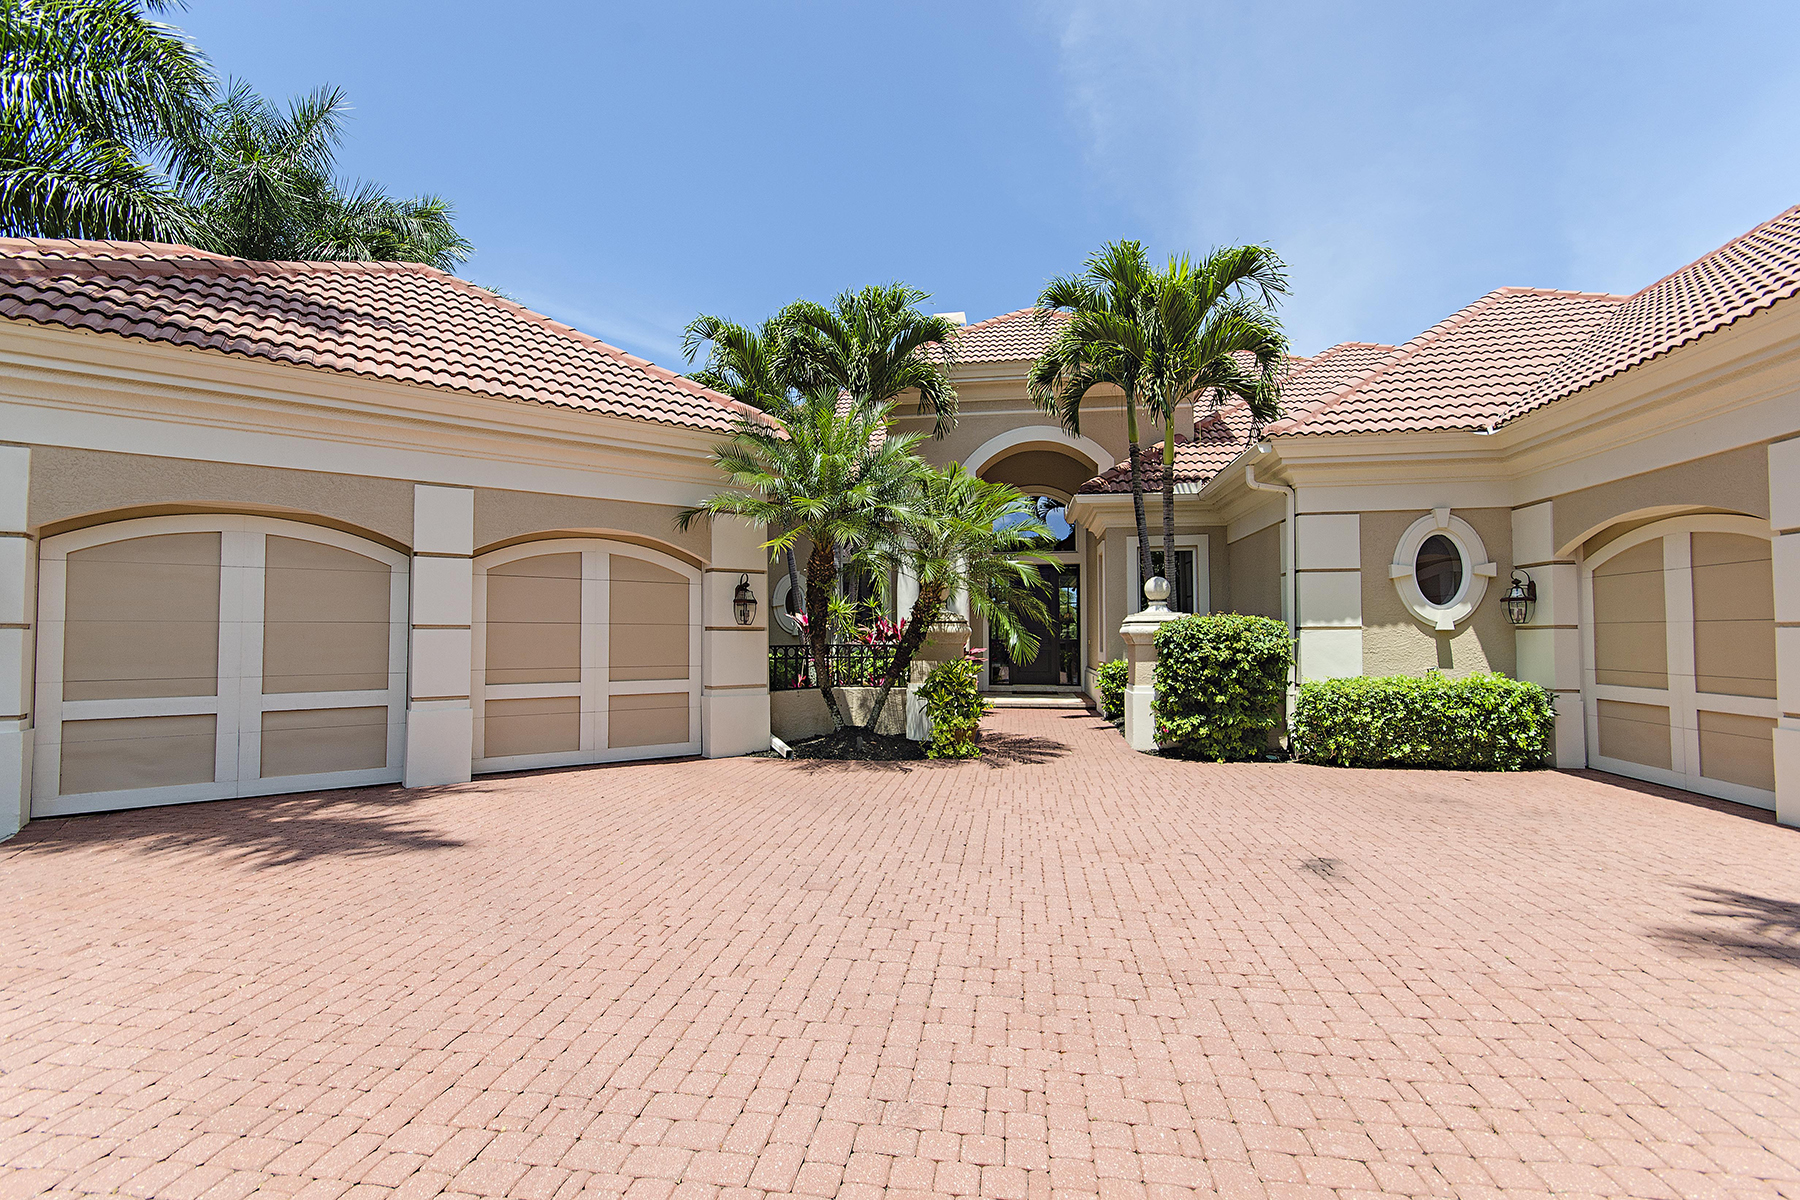 Single Family Home for Rent at BONITA BAY - ROOKERY LAKE 4060 Arrowwood Ct, Bonita Springs, Florida 34134 United States